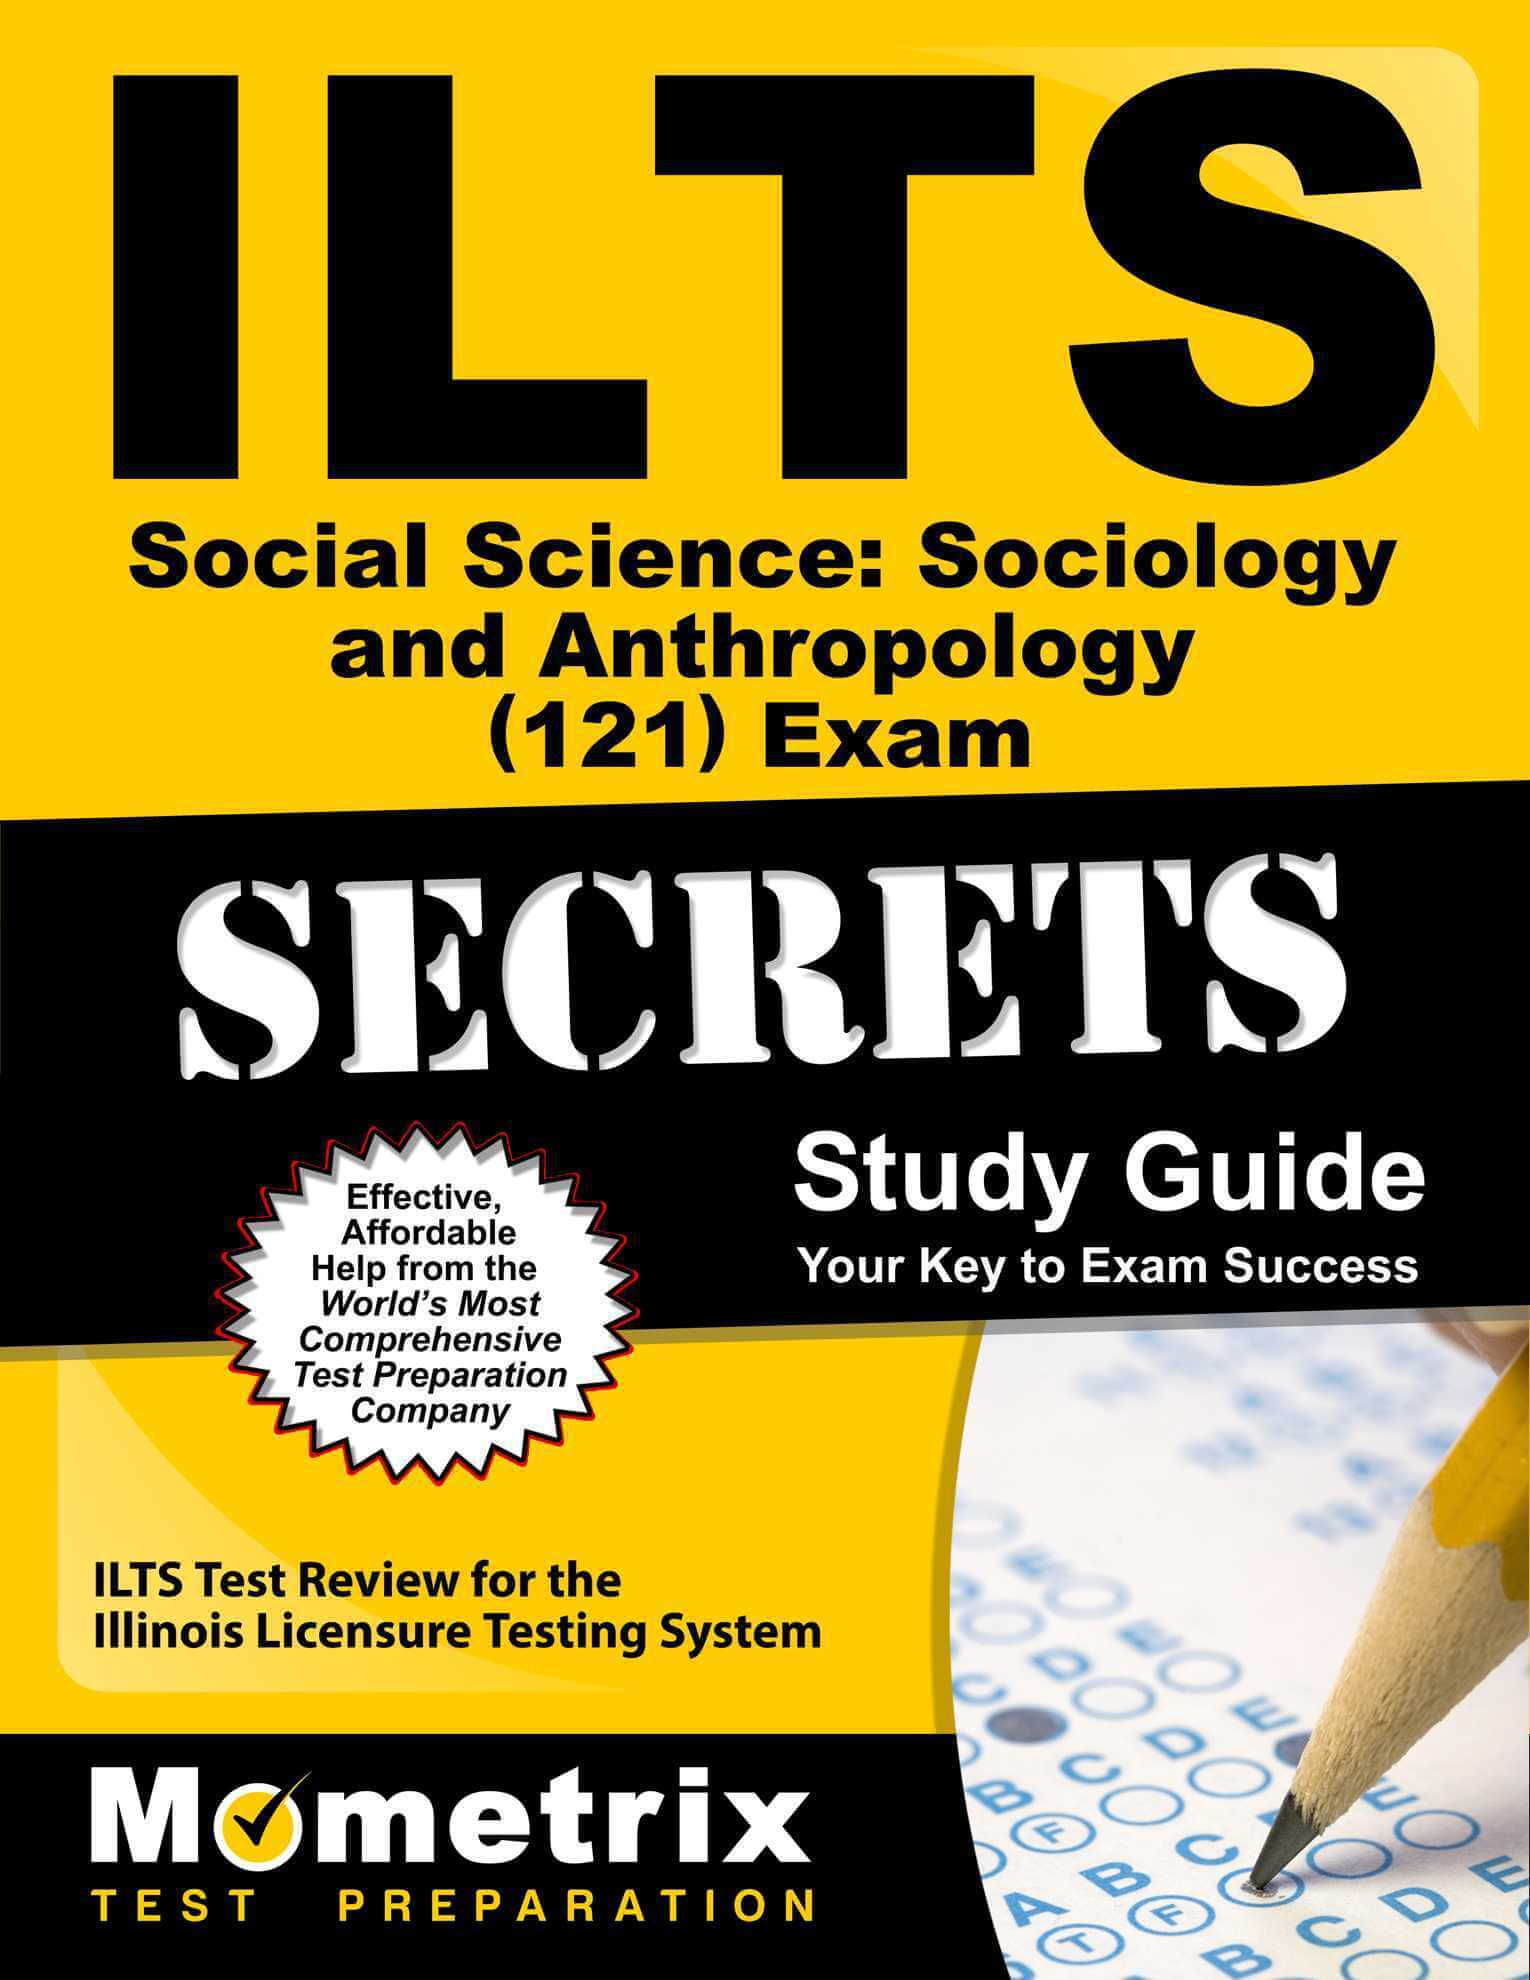 ILTS Social Science: Sociology and Anthropology Study Guide